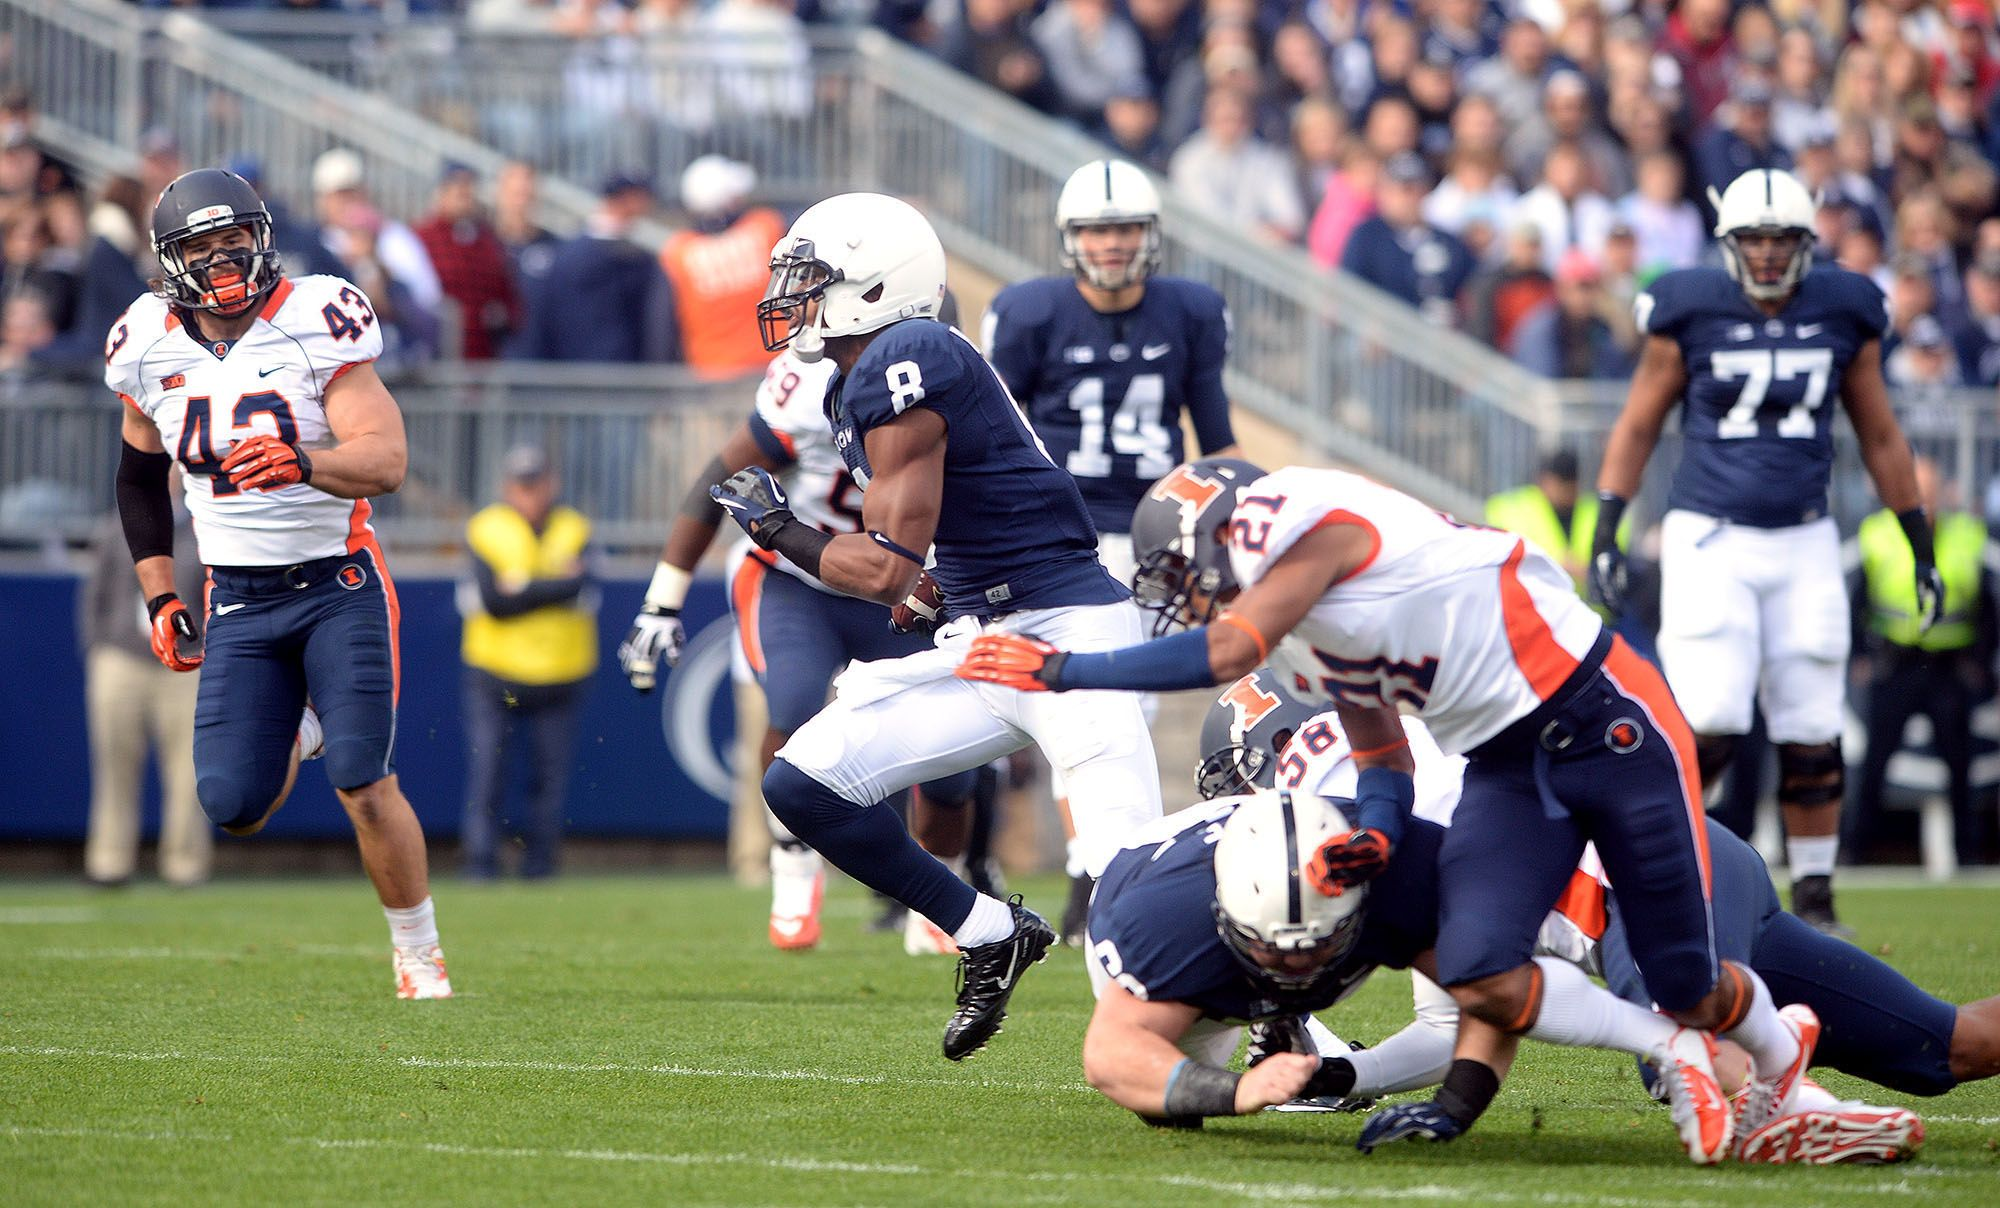 PENN STATE – FOOTBALL 2013 – ALLEN ROBINSON catches bubble screen pass and breaks loose for 47 yards to jump-start Nittany Lions' first scoring drive.